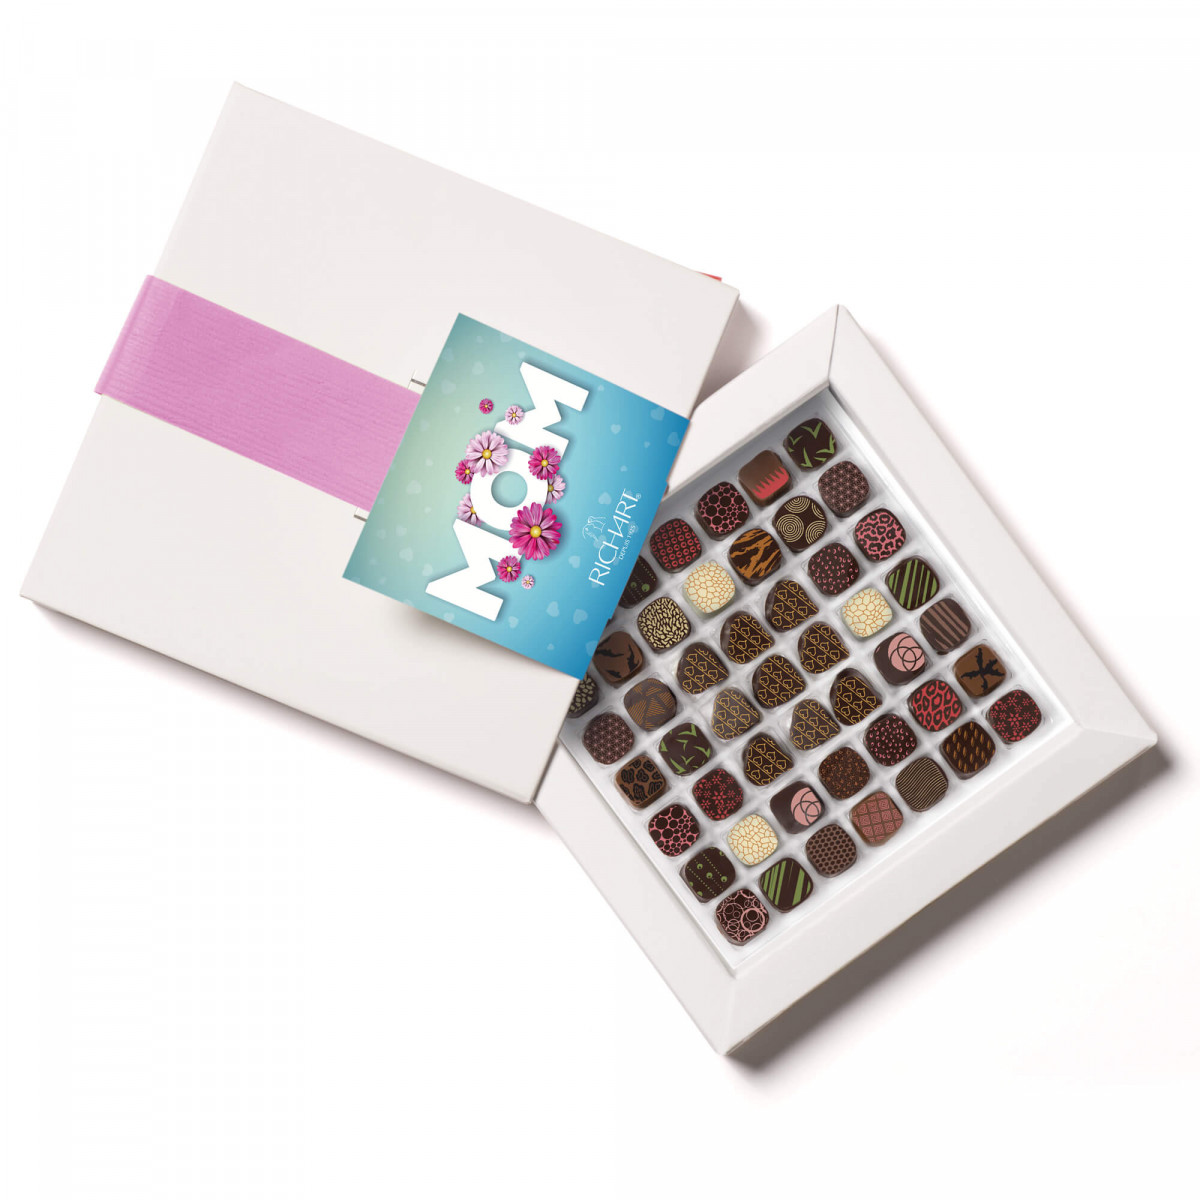 Intense Mom: filled chocolates for Mother's Day from Maison RICHART